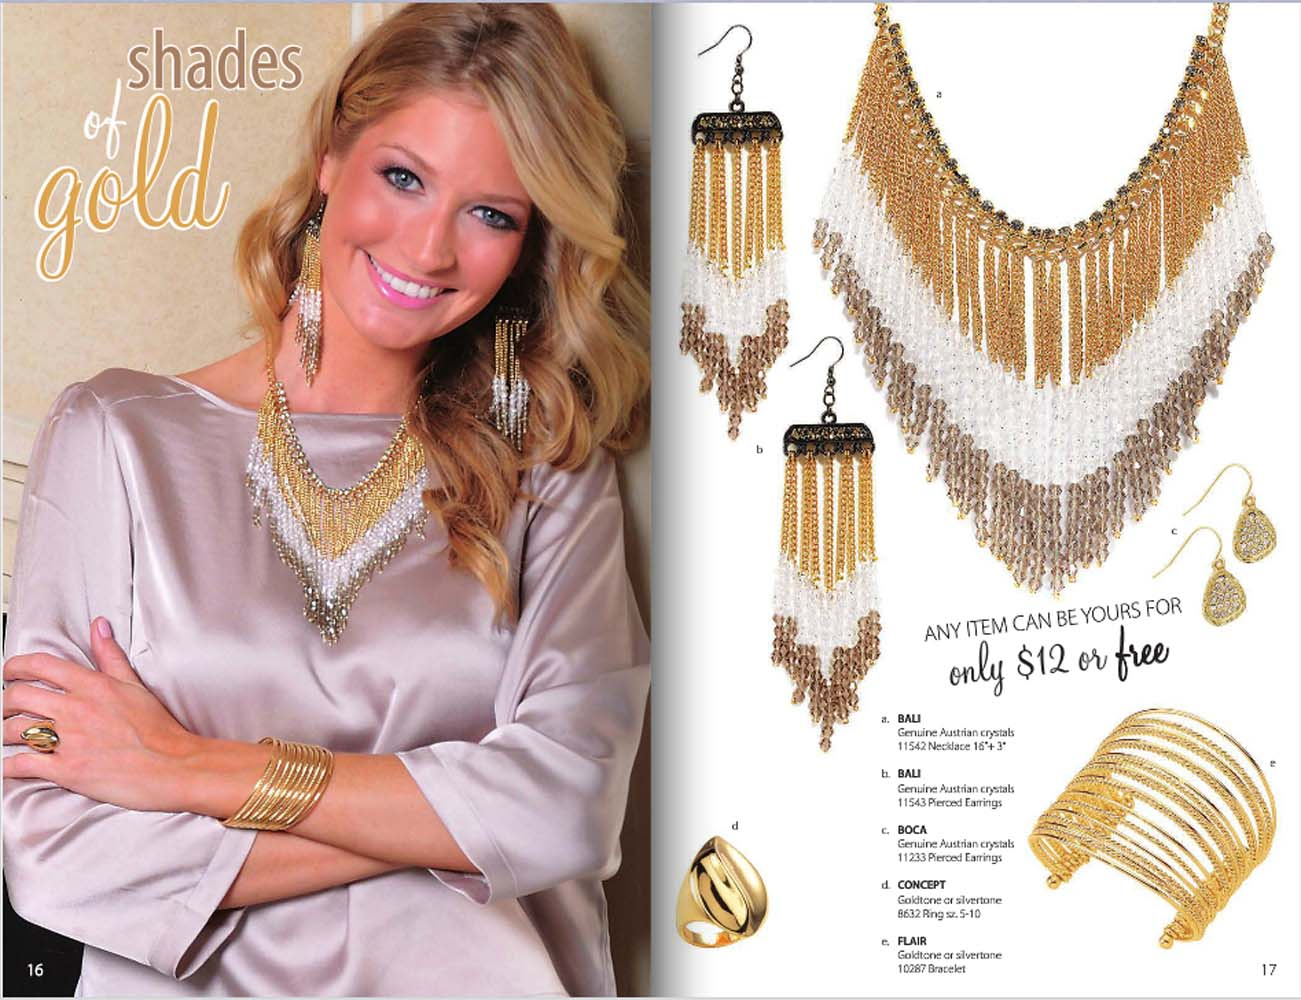 Catalog pages from Park Lane jewelry catalog showing model on left wearing gold and silver set and product shots on right with prices